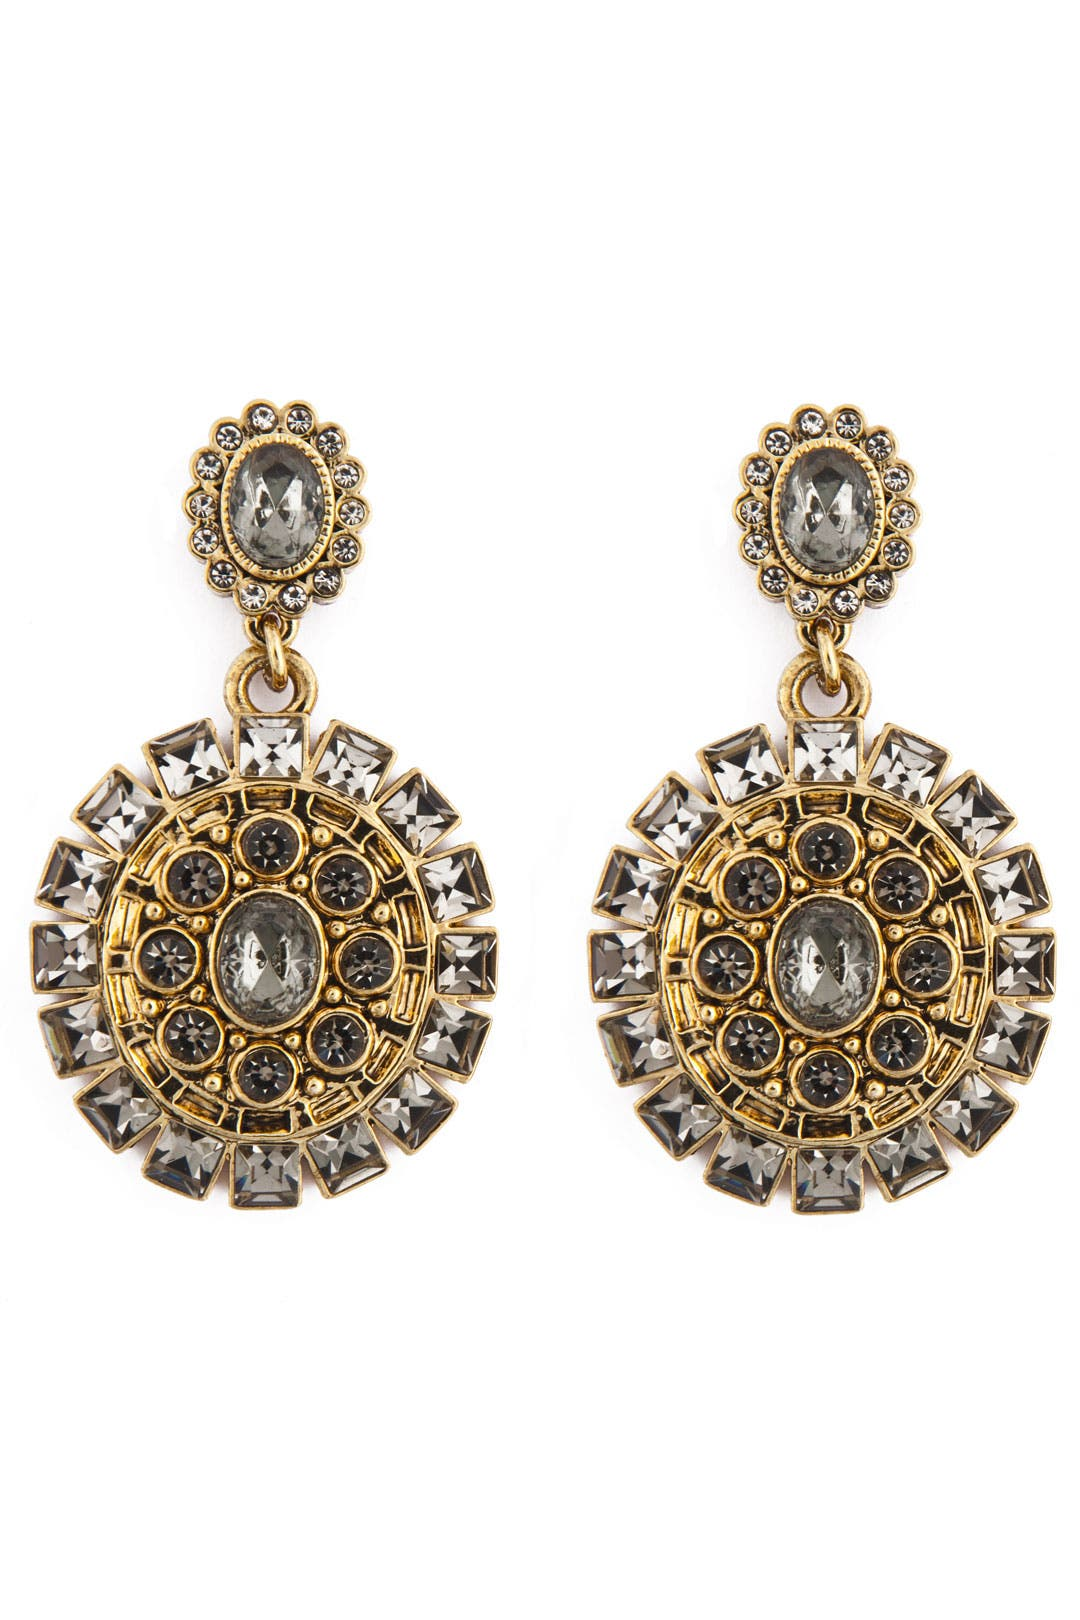 Dramatic Drop Earrings by Badgley Mischka Jewelry